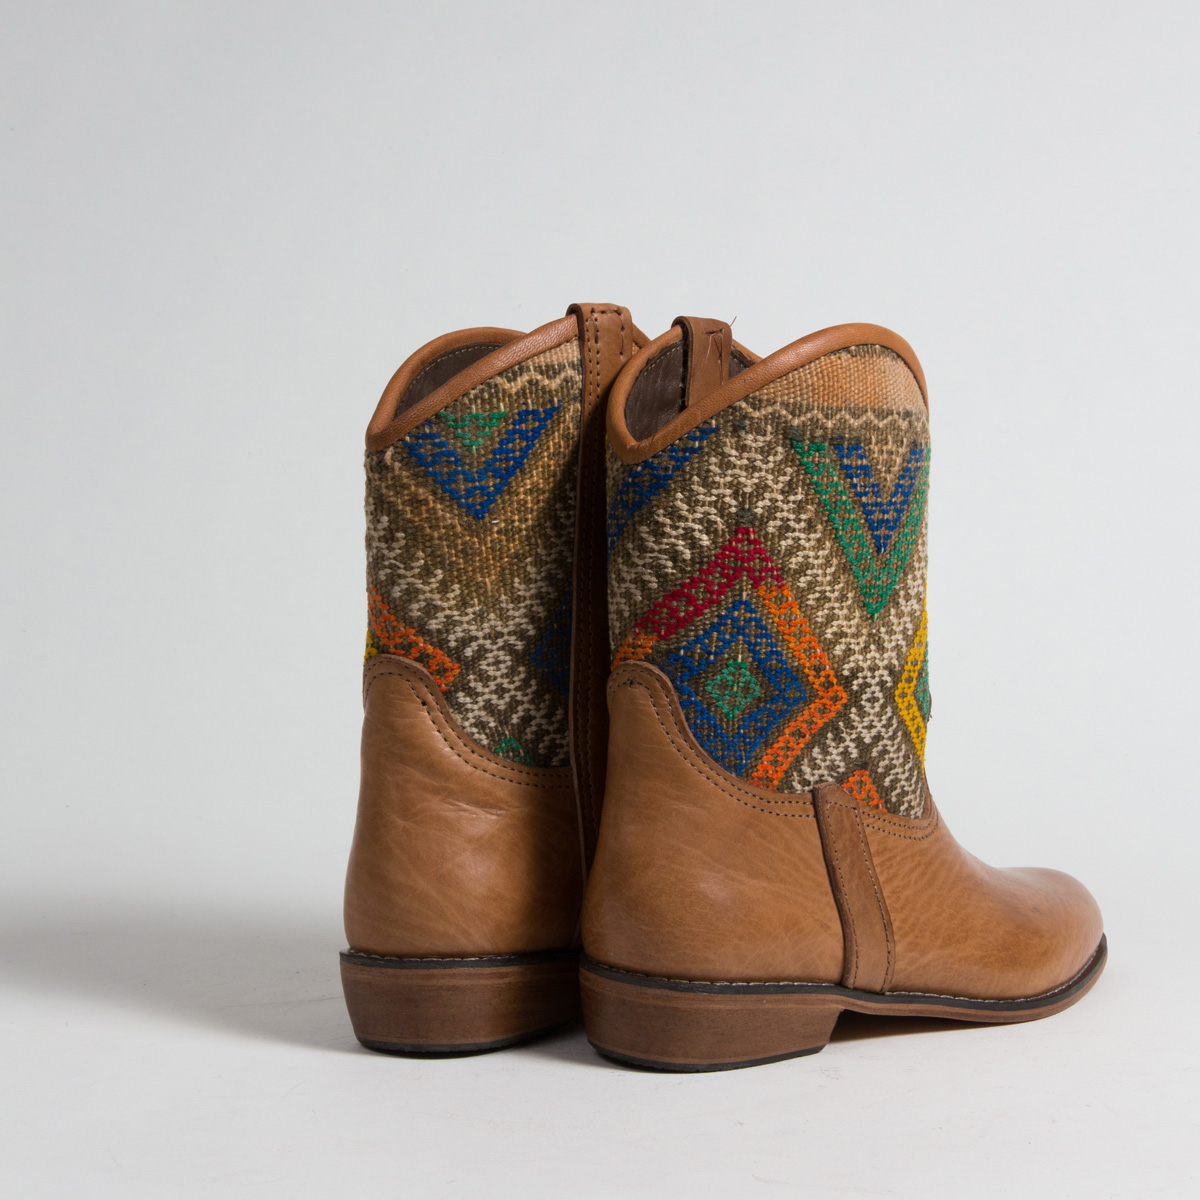 Bottines Kilim cuir mababouche artisanales (Réf. P6-39)